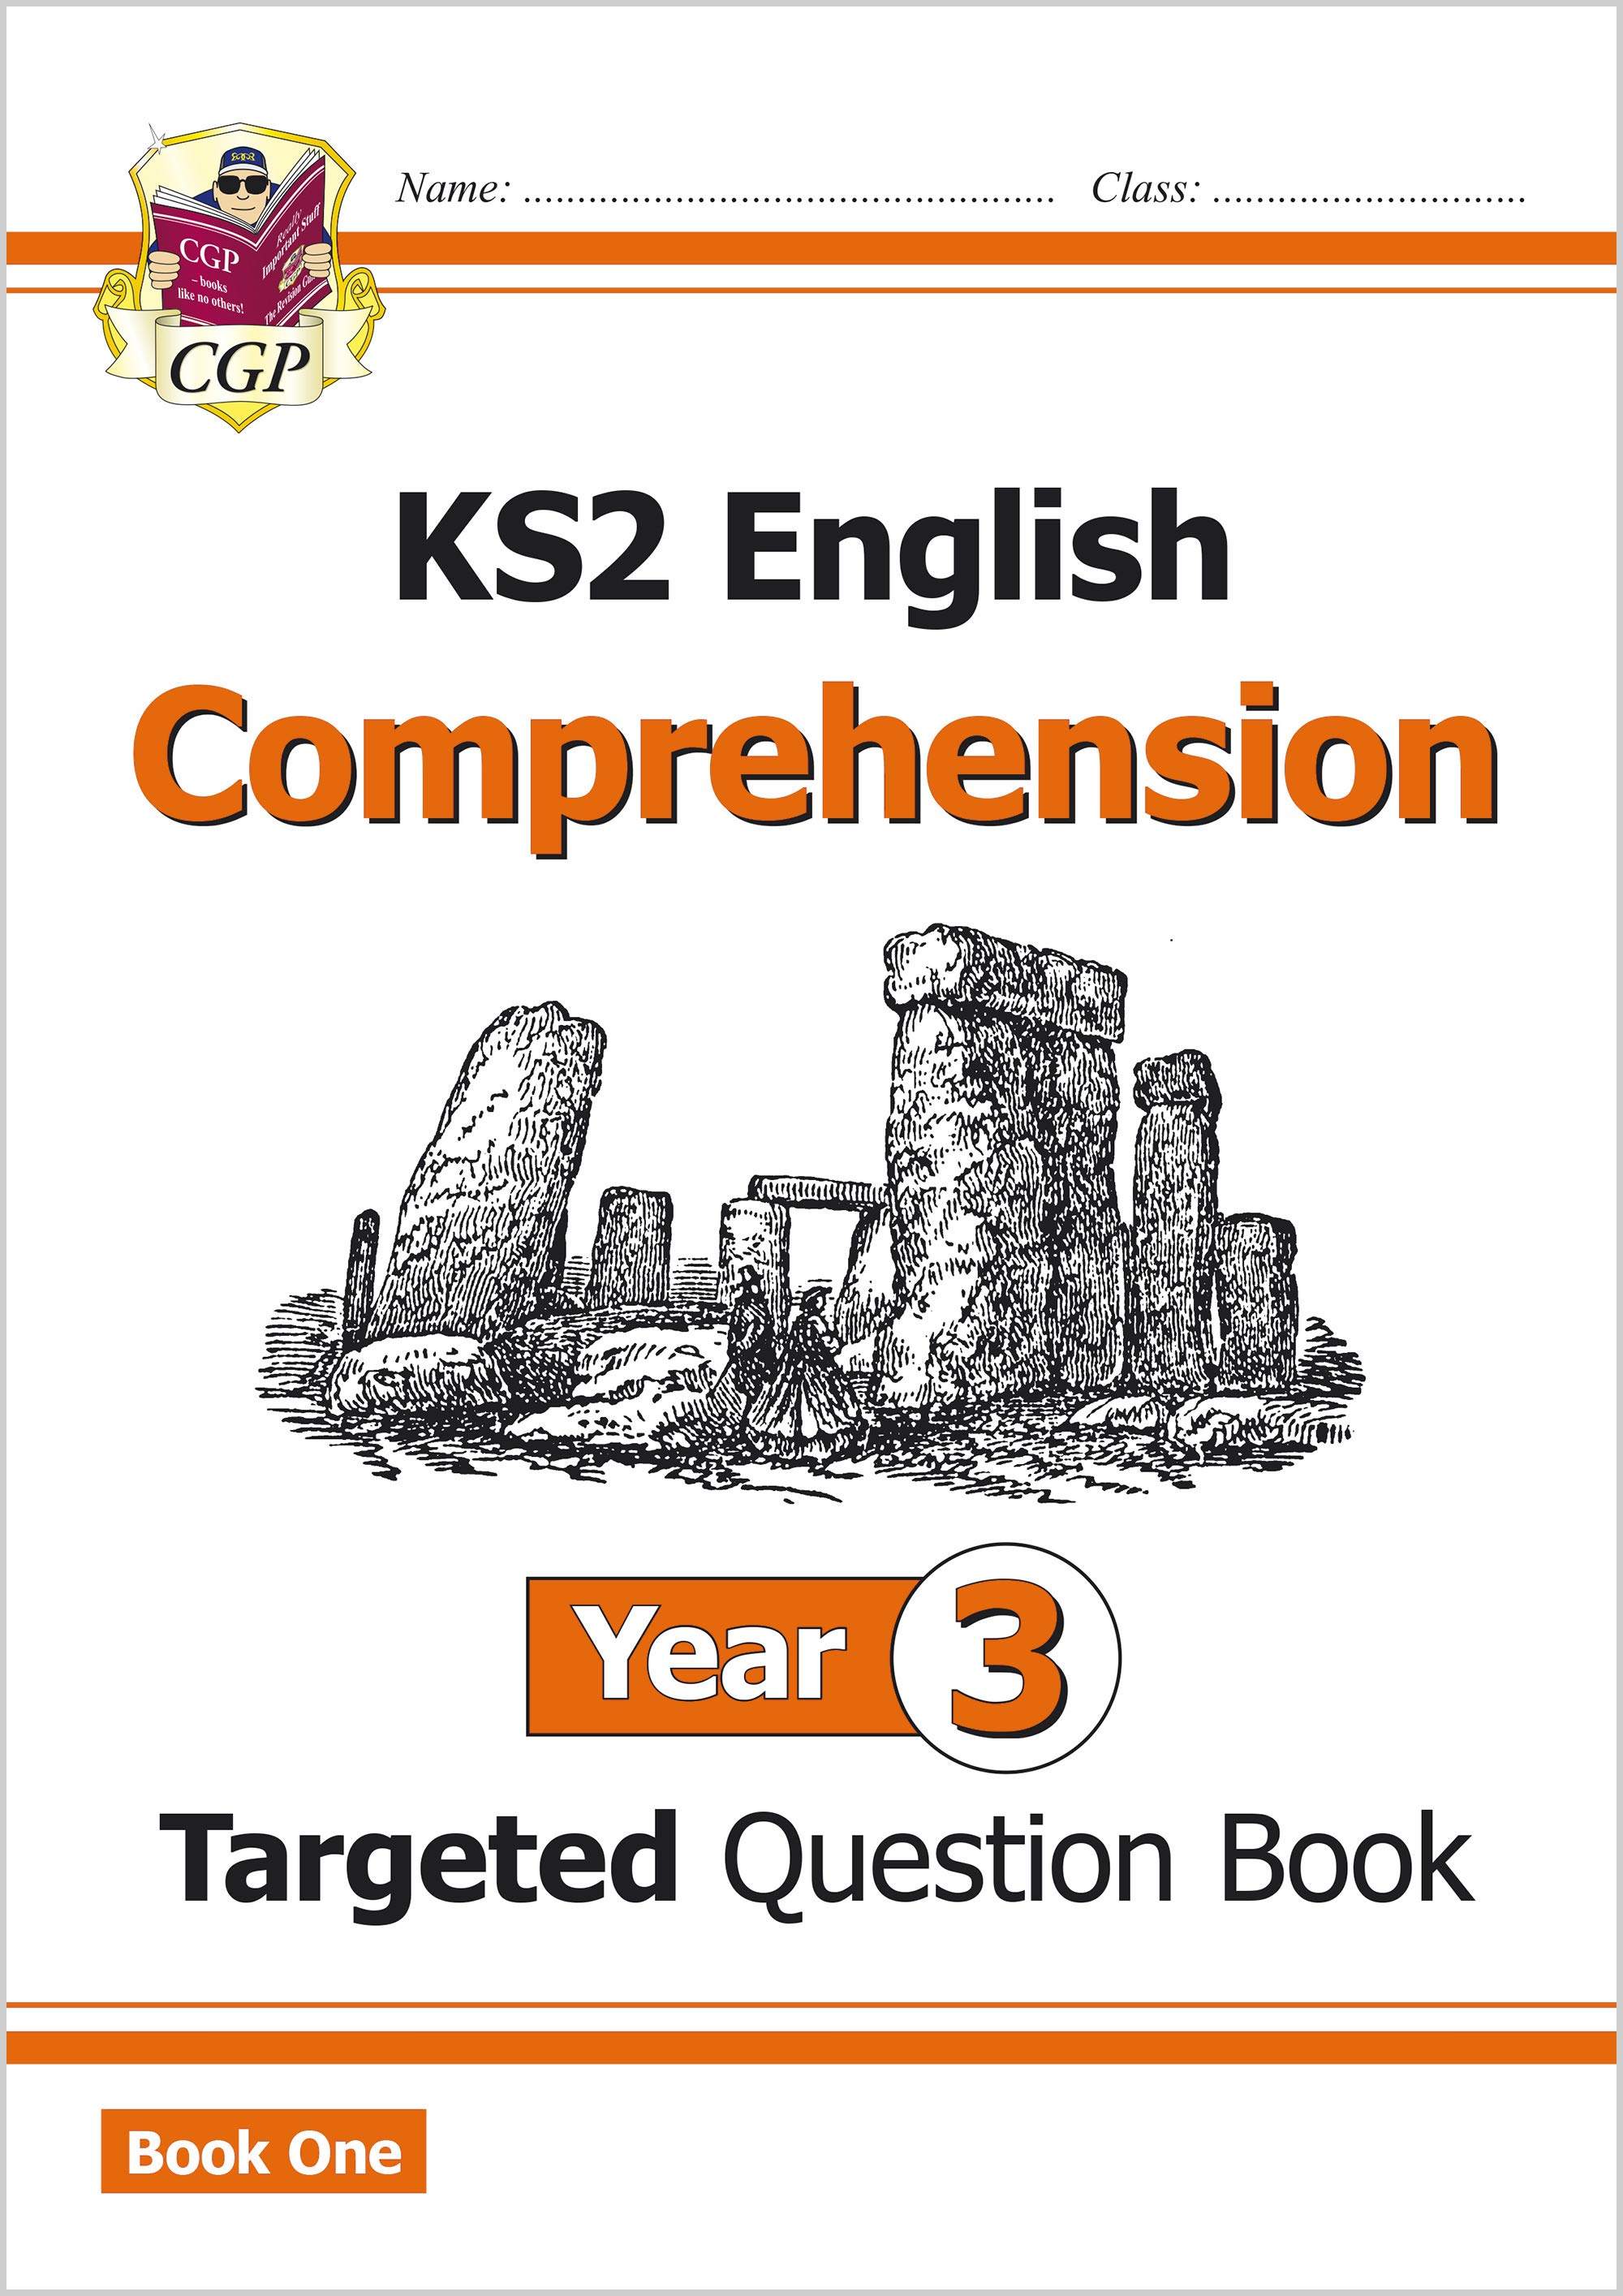 E3CW21 - KS2 English Targeted Question Book: Year 3 Comprehension - Book 1